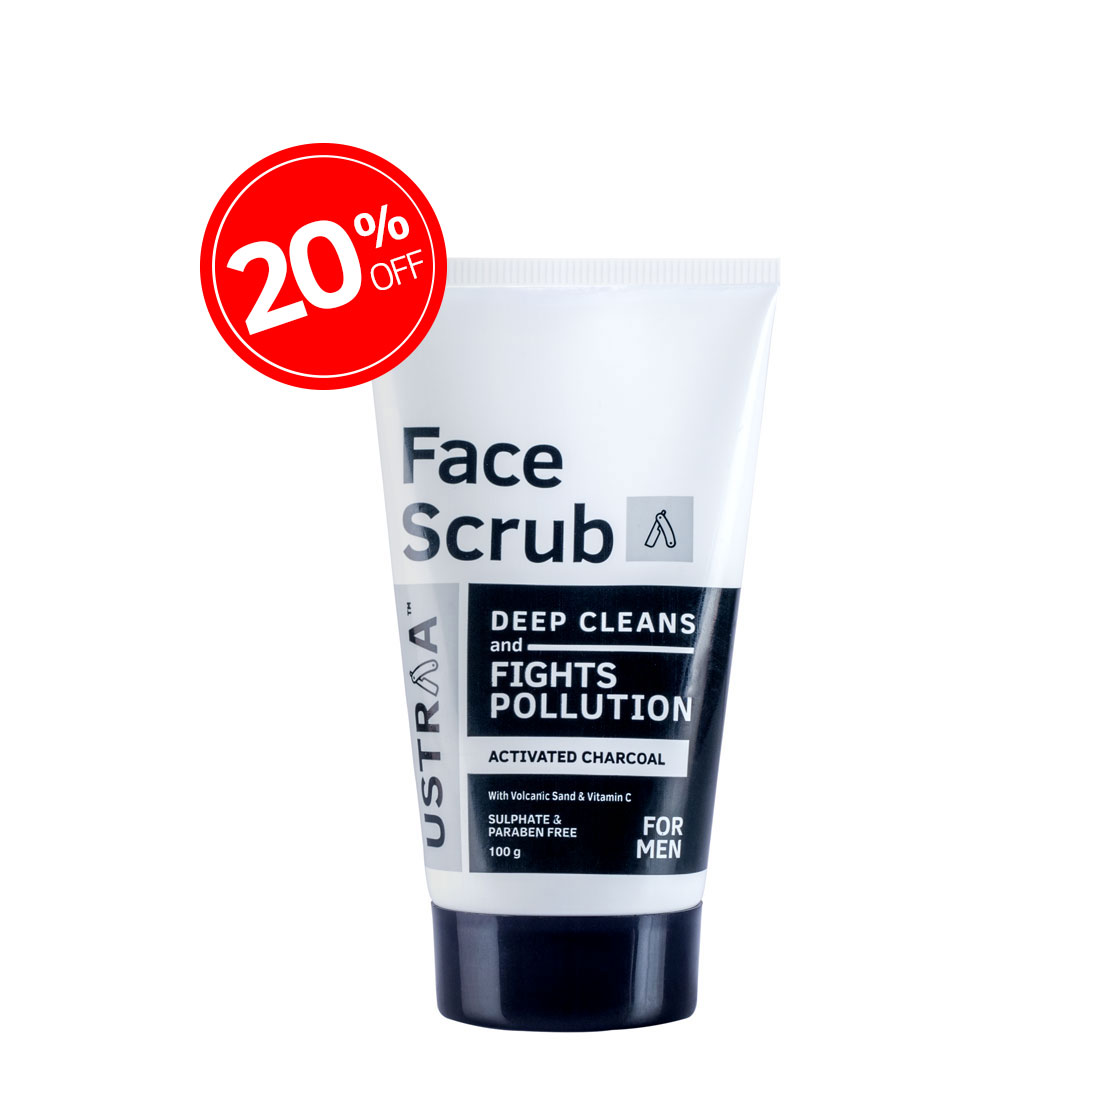 Activated Charcoal Face Scrub - 100g